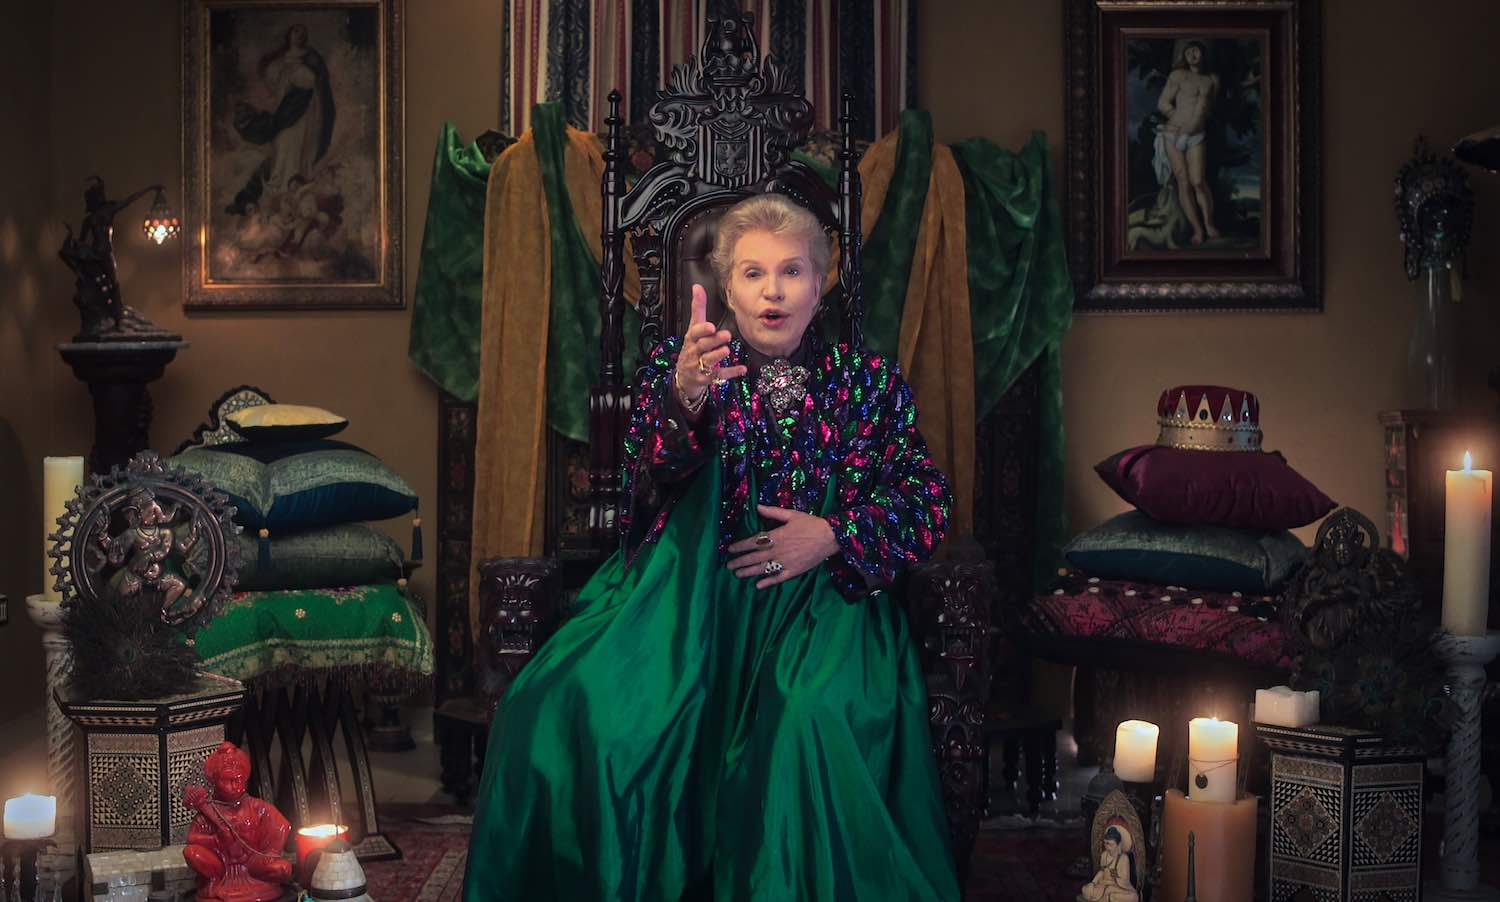 Walter Mercado Documentales Netflix